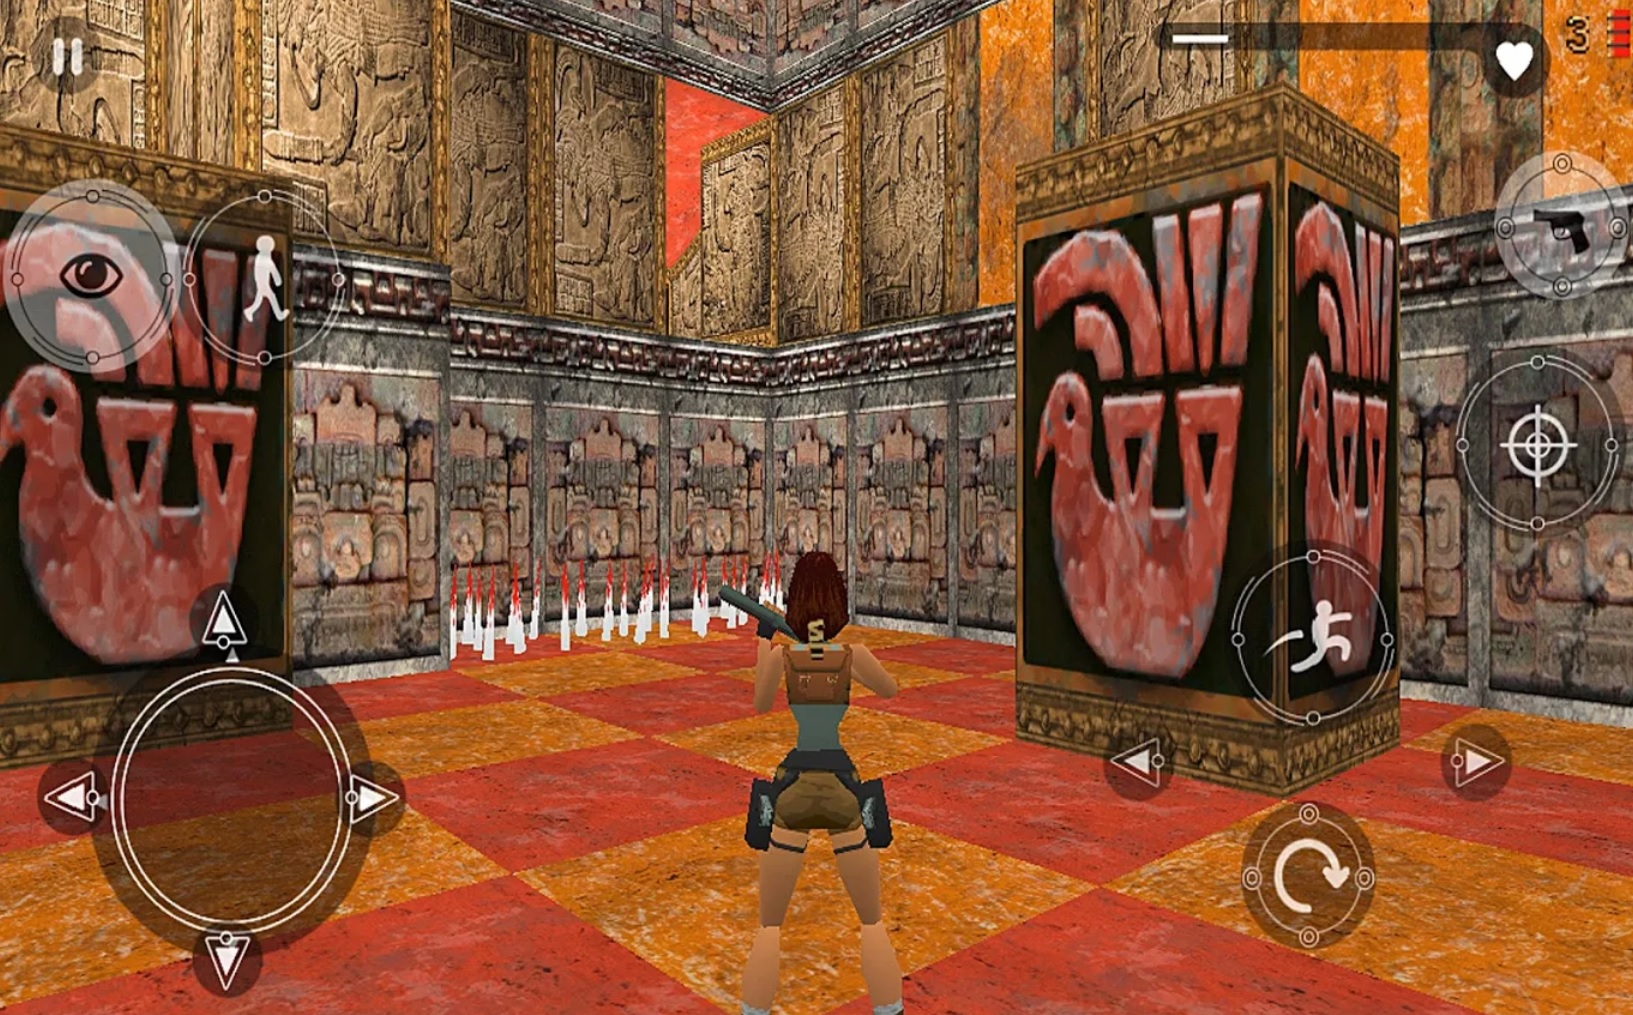 [n]TombRaiderAndroid